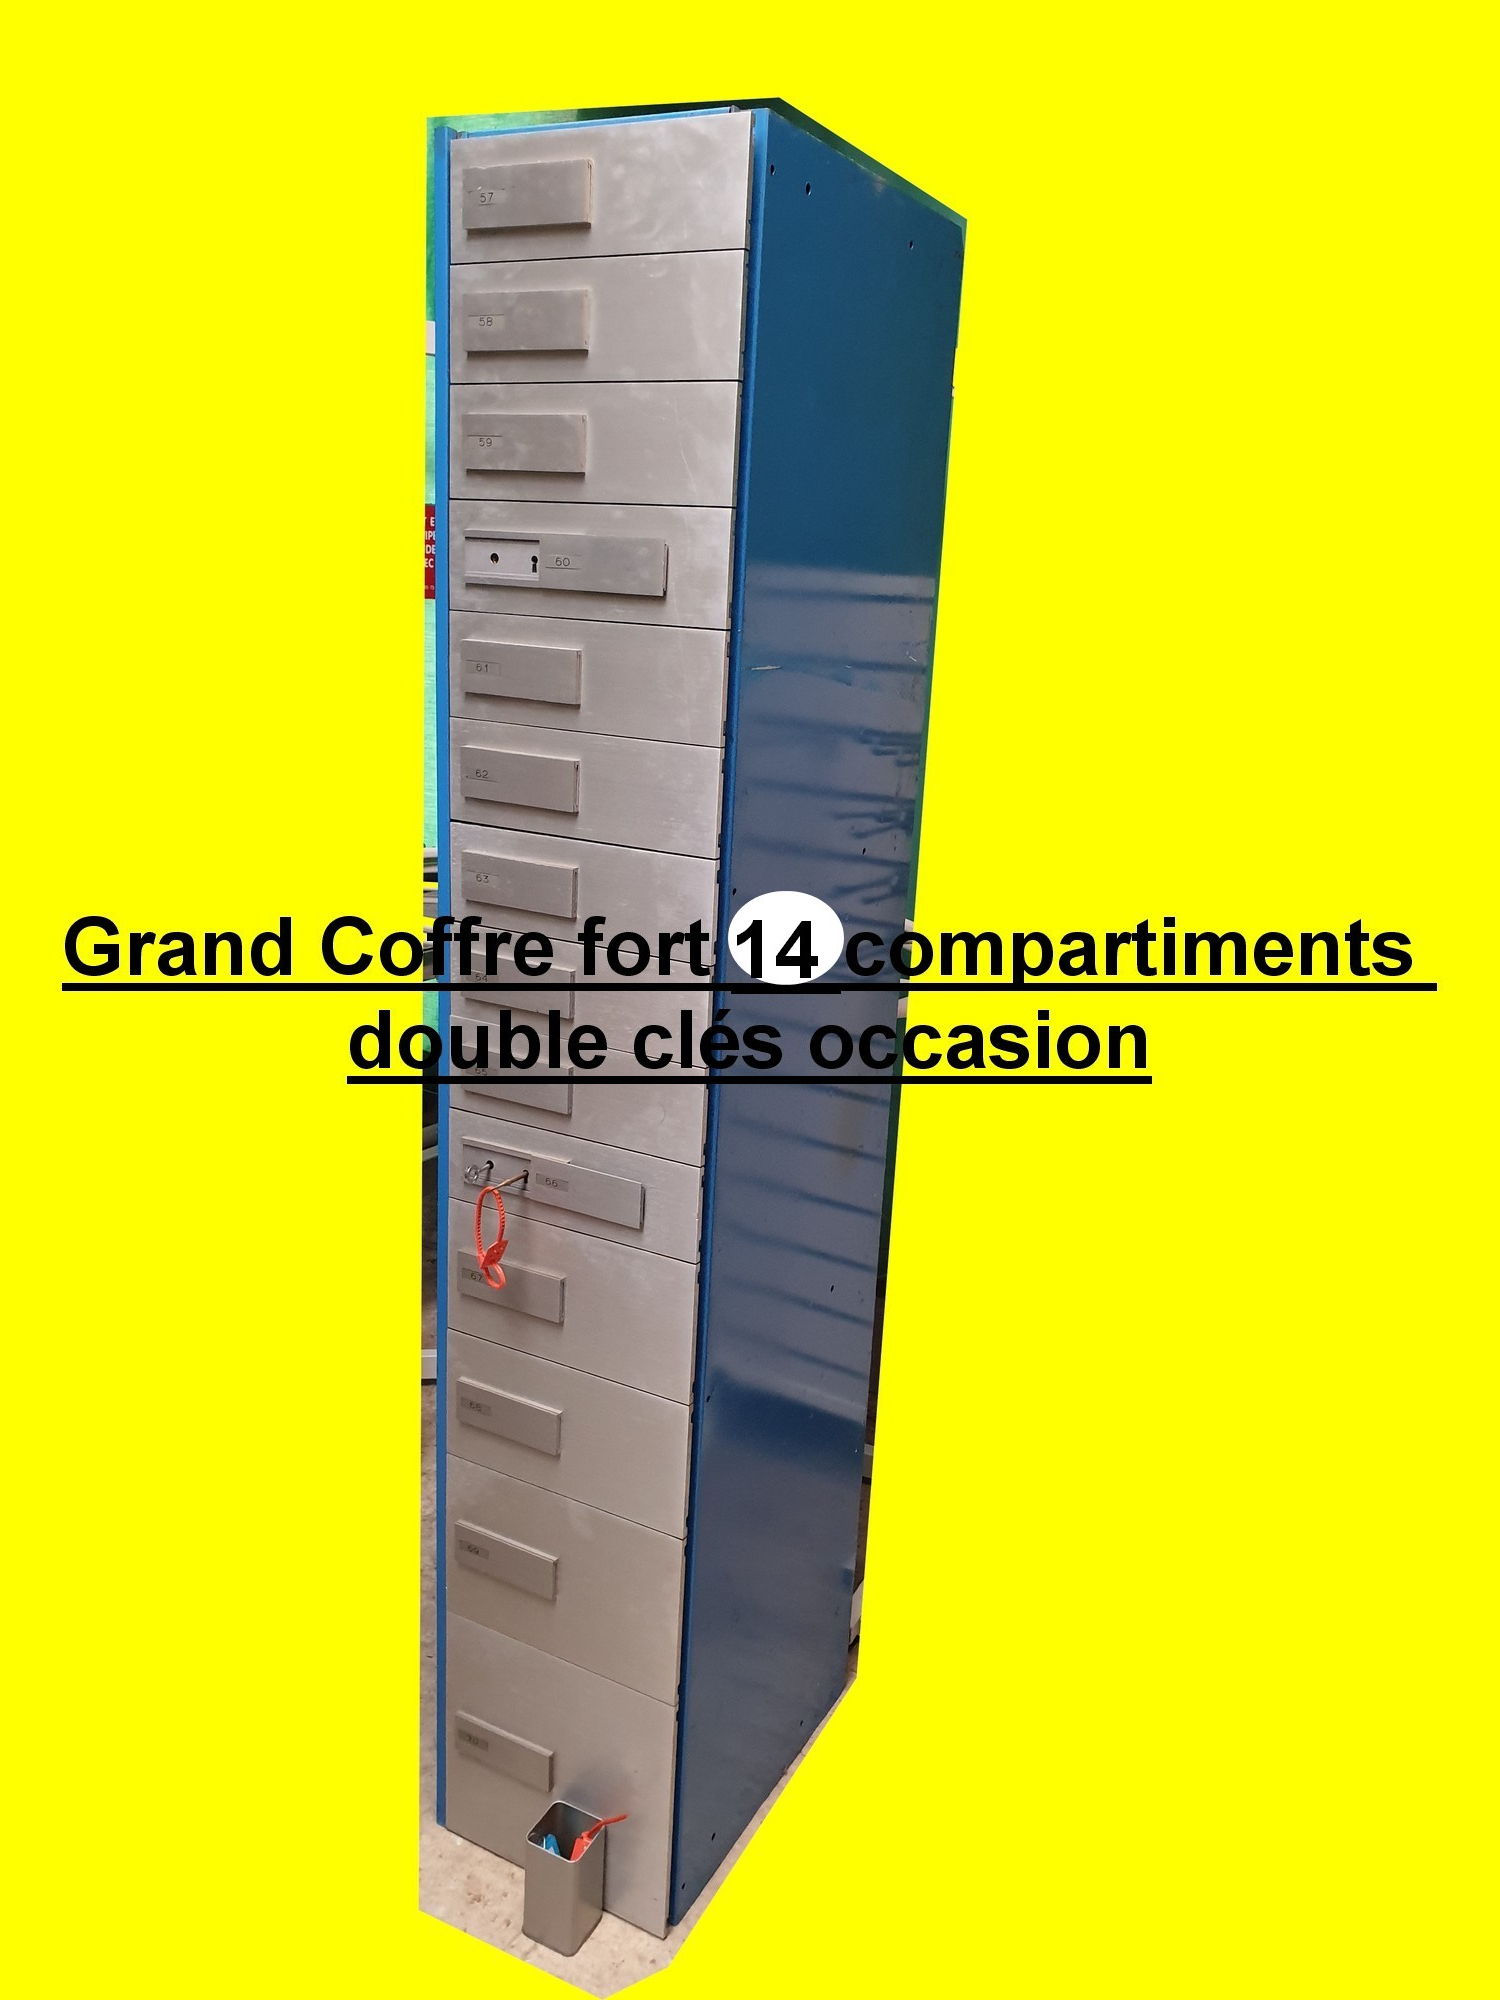 grand coffre fort 14 compartiments double cl s occasion. Black Bedroom Furniture Sets. Home Design Ideas